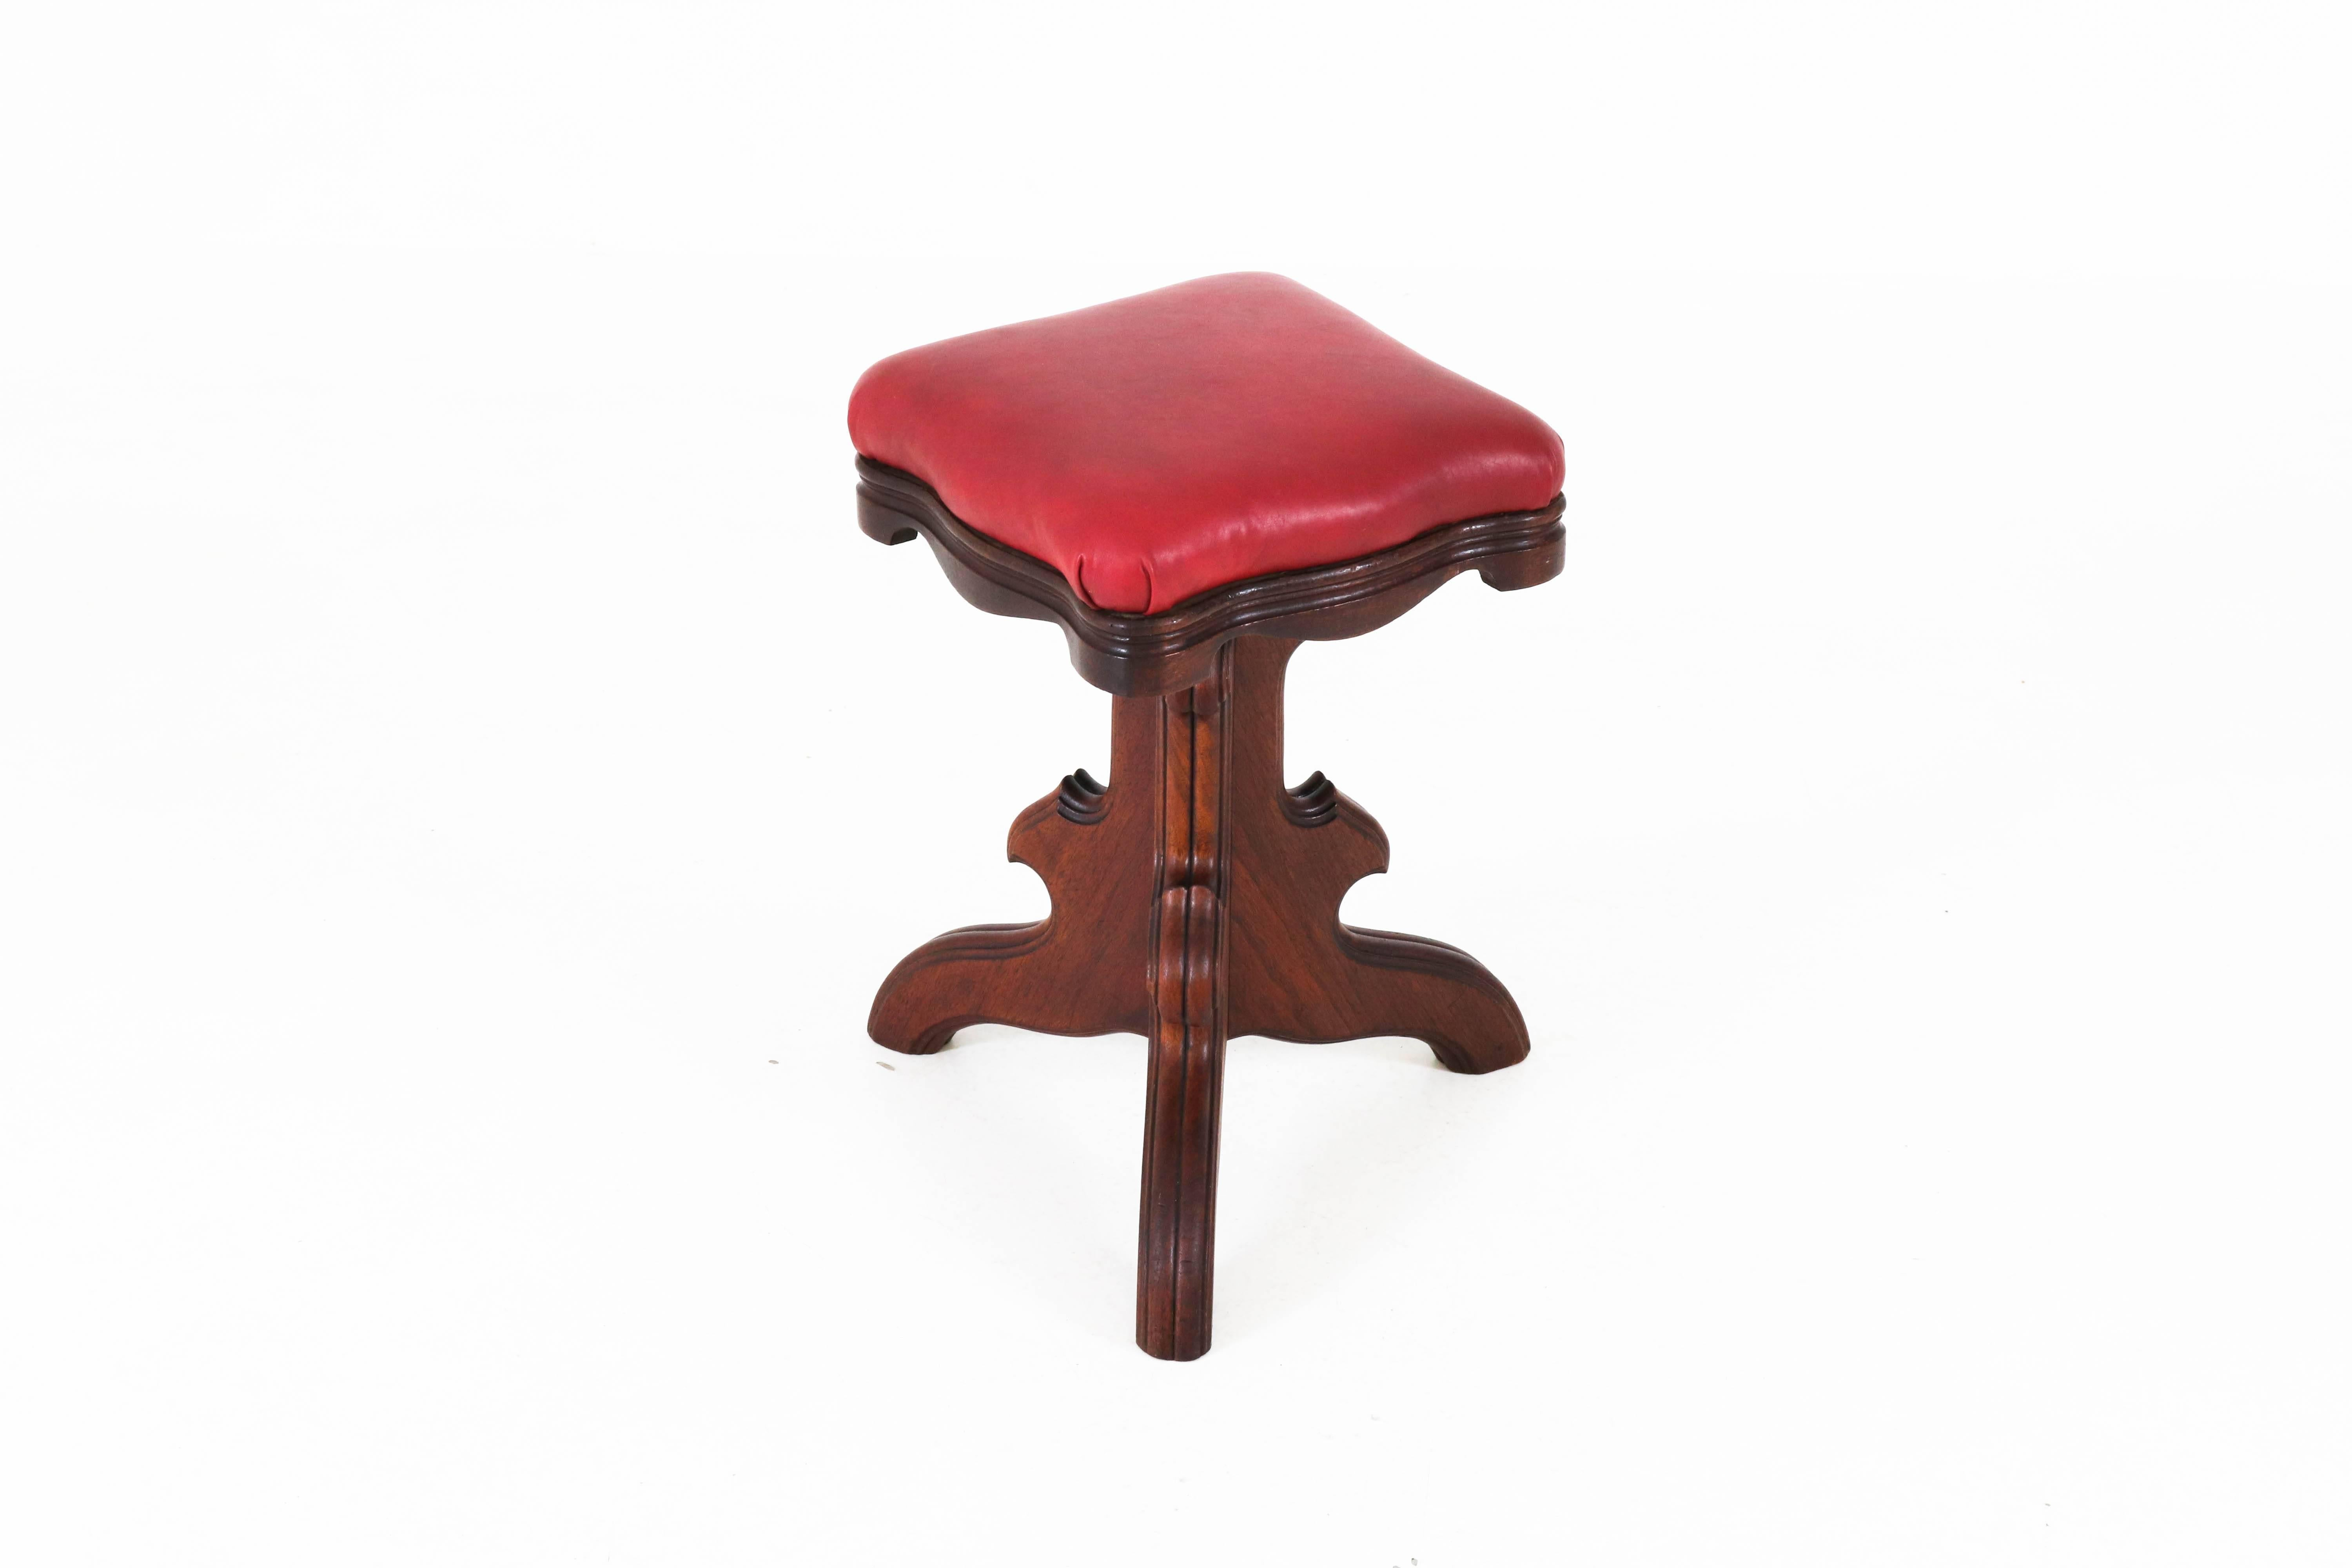 Antiques Edwardian (1901-1910) Striking Art Nouveau Piano Stool With Adjustable Height Buy One Get One Free